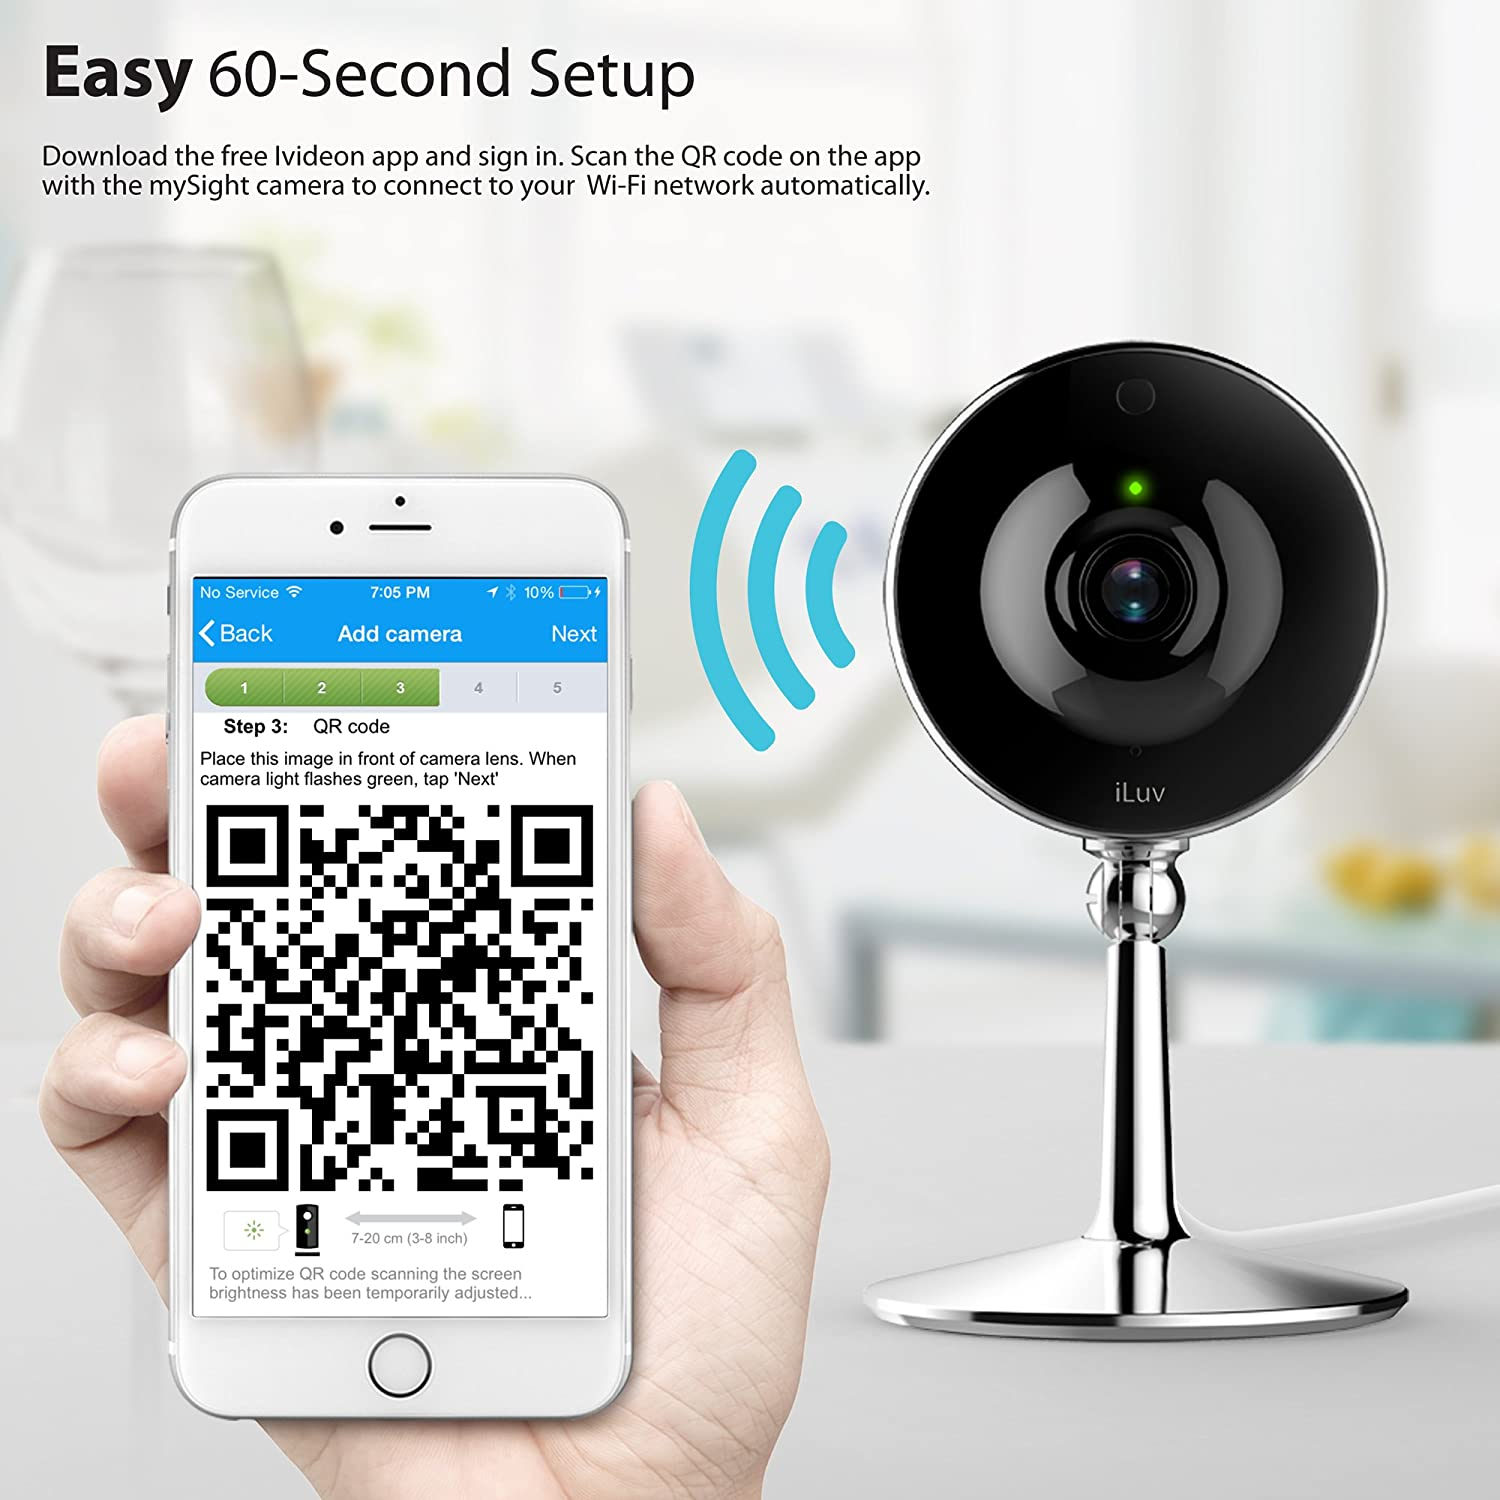 iLuv mySight Wi-Fi Cloud-Based HD Video Camera for Home and Business  Monitoring with Cloud Recording, Motion and Noise Detection, Mobile Alerts,